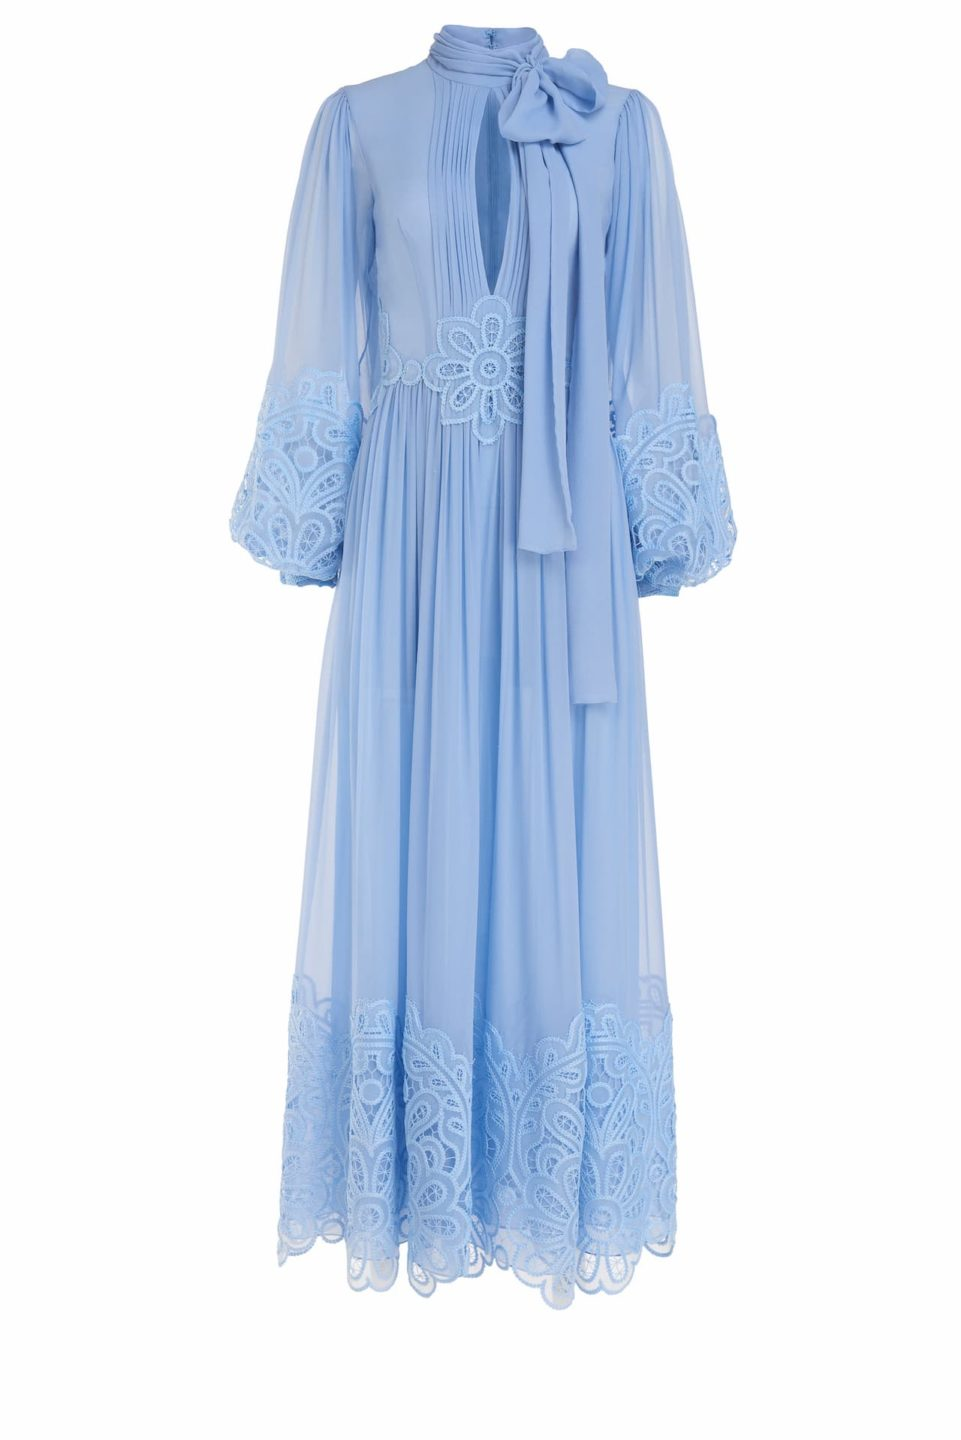 Tianna SS2111 Blue Silk Chiffon Long-Sleeve Pussybow Gown with Embroidered Organza Detail